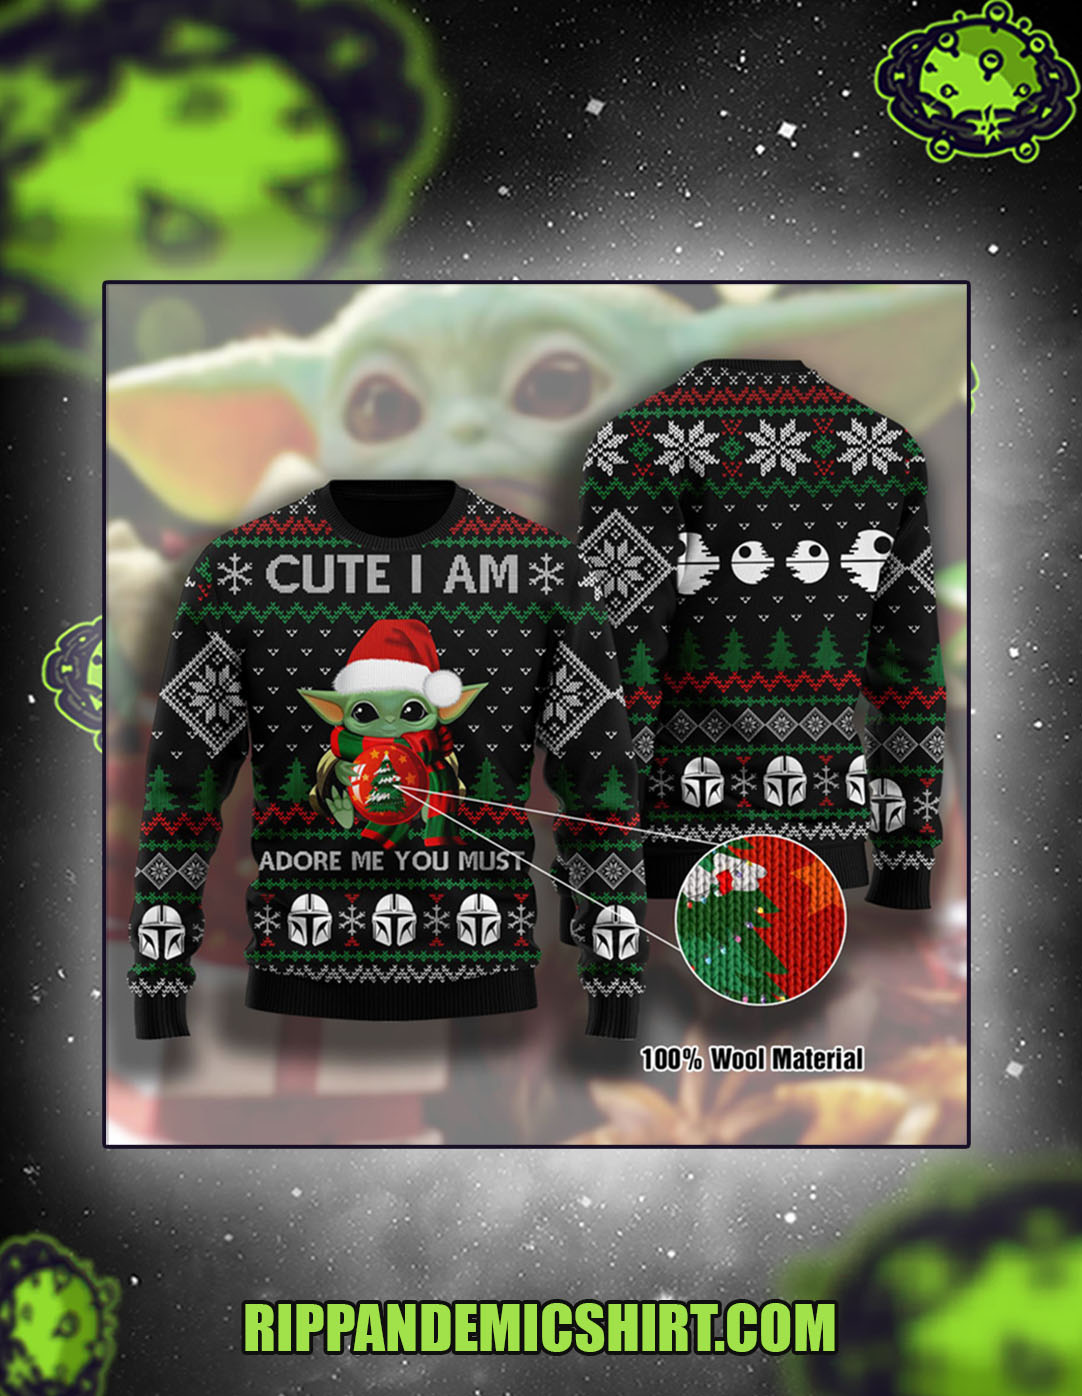 Baby yoda cute i am adore me you must christmas sweater size M